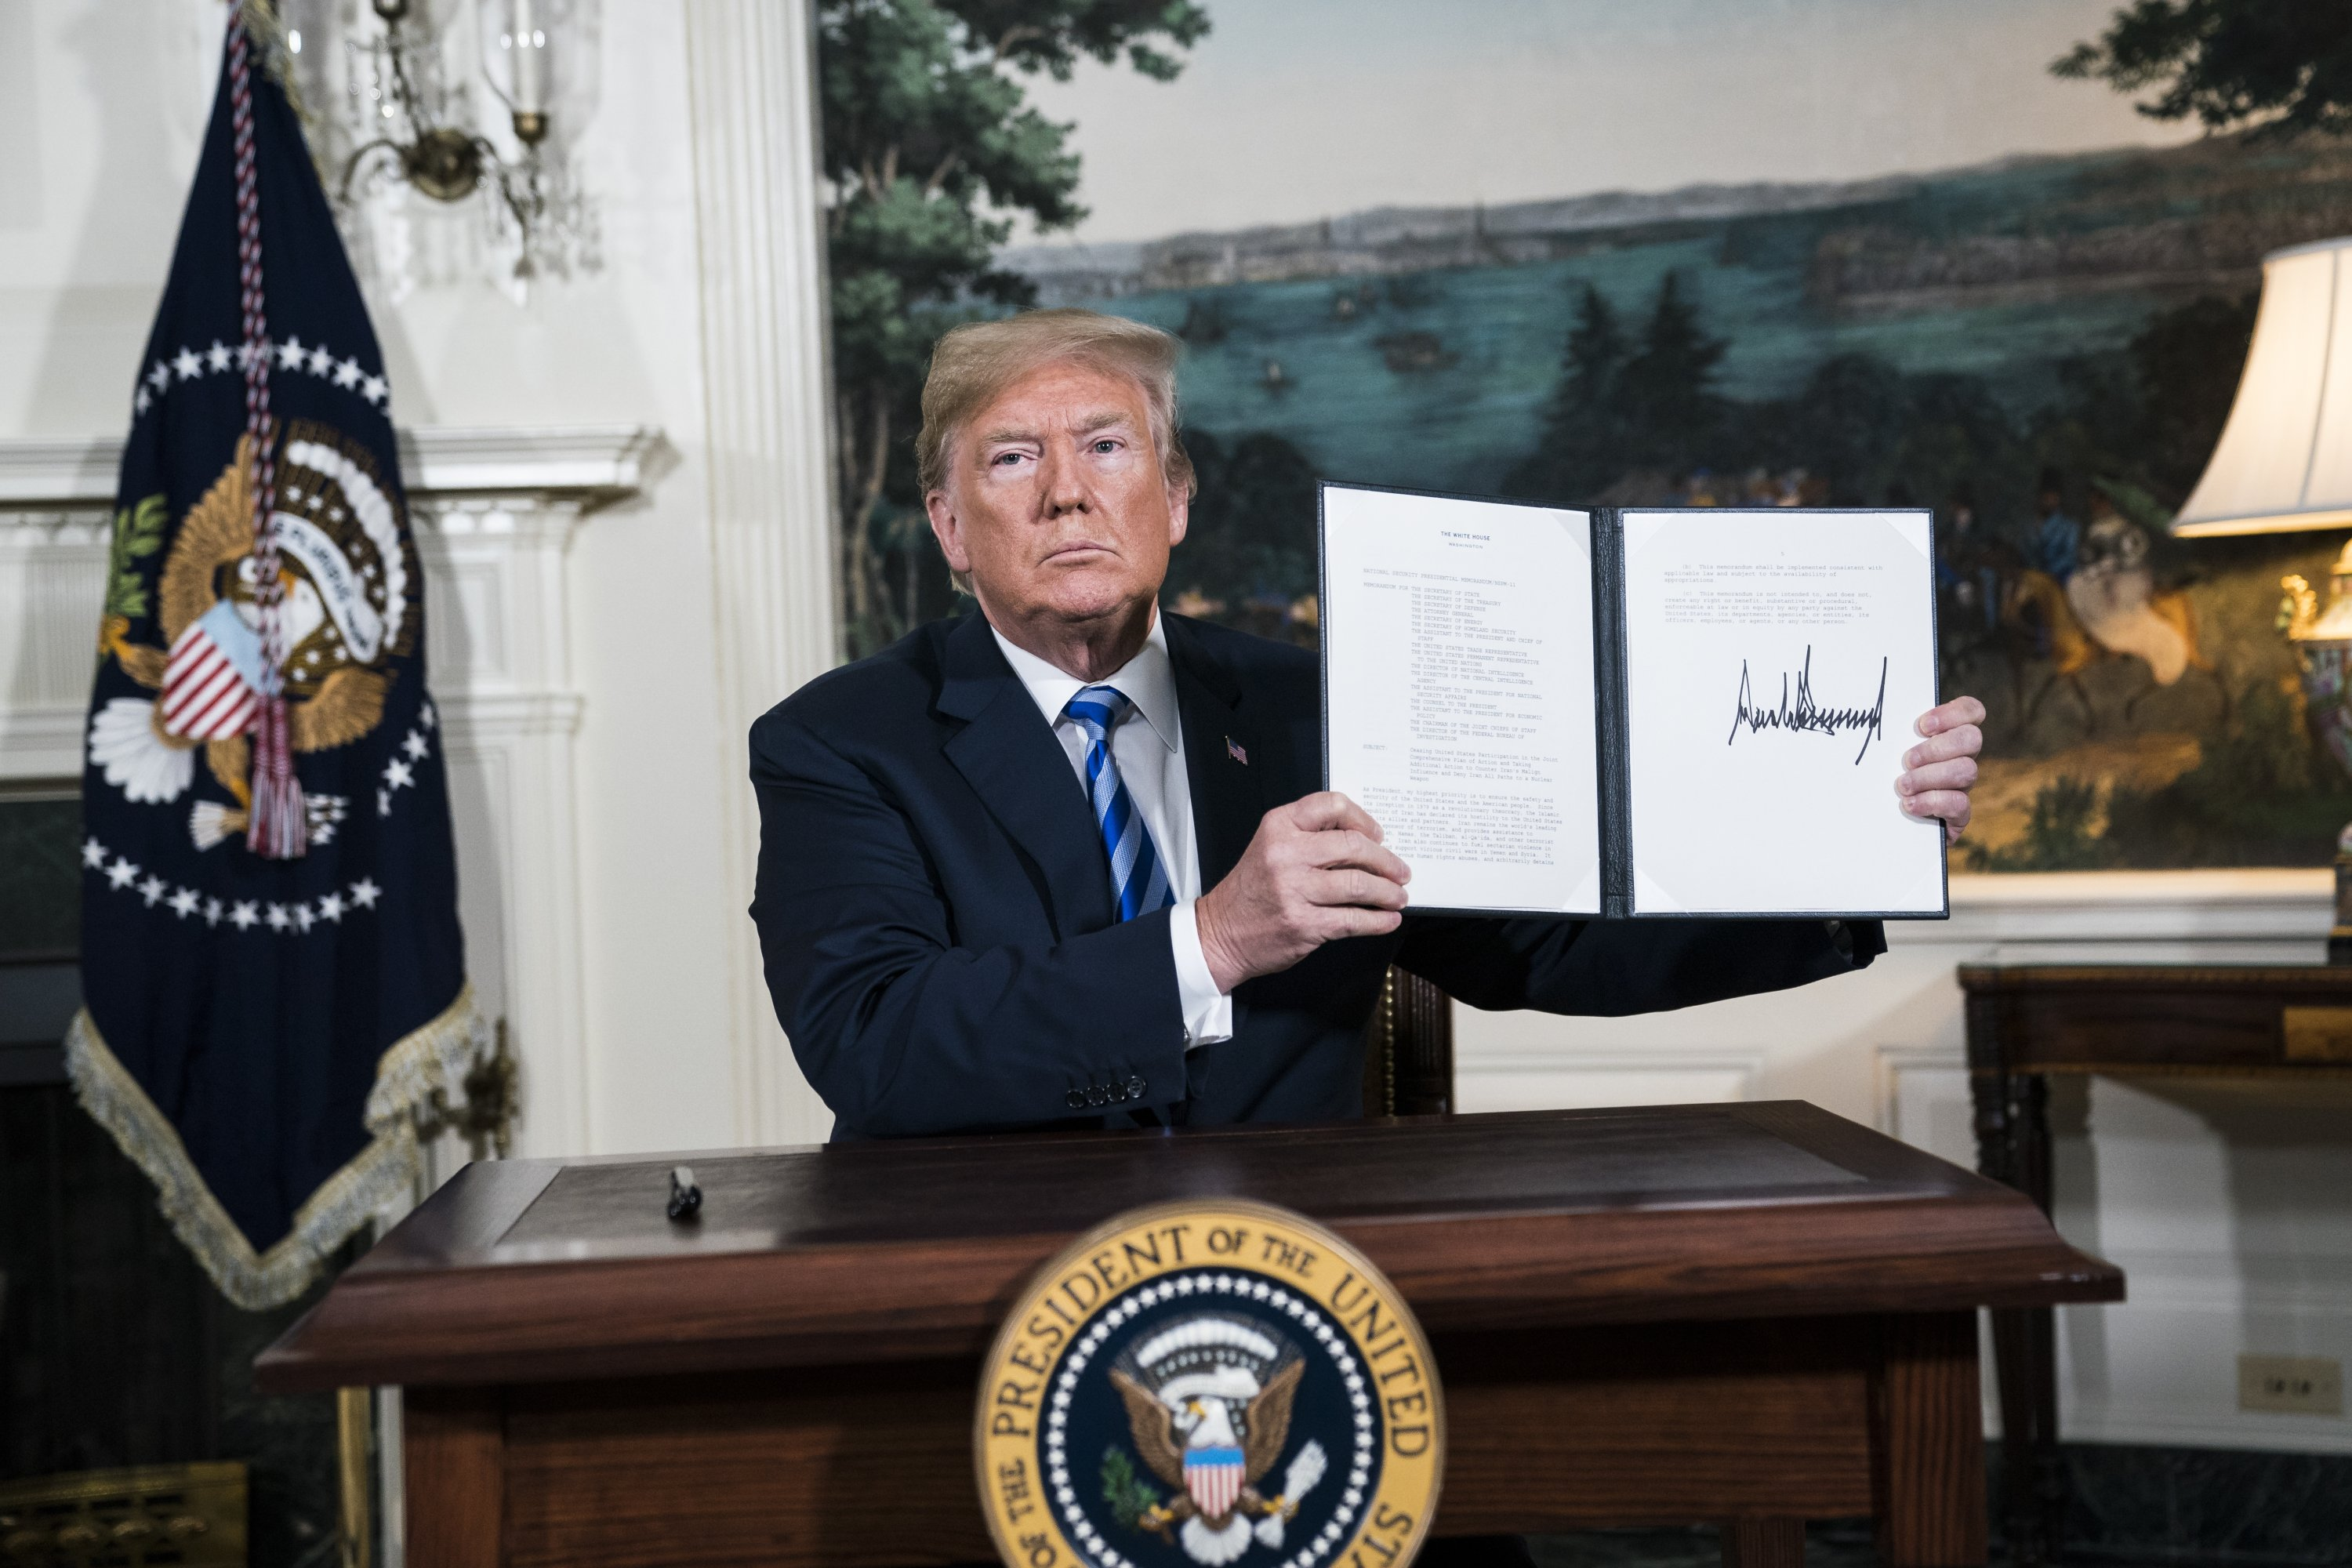 Then-U.S. President Donald Trump signs a presidential memorandum as he announces the U.S. withdrawal from the Iranian nuclear deal, at the White House, Washington, D.C., U.S., May 8, 2018. (Photo by Getty Images)